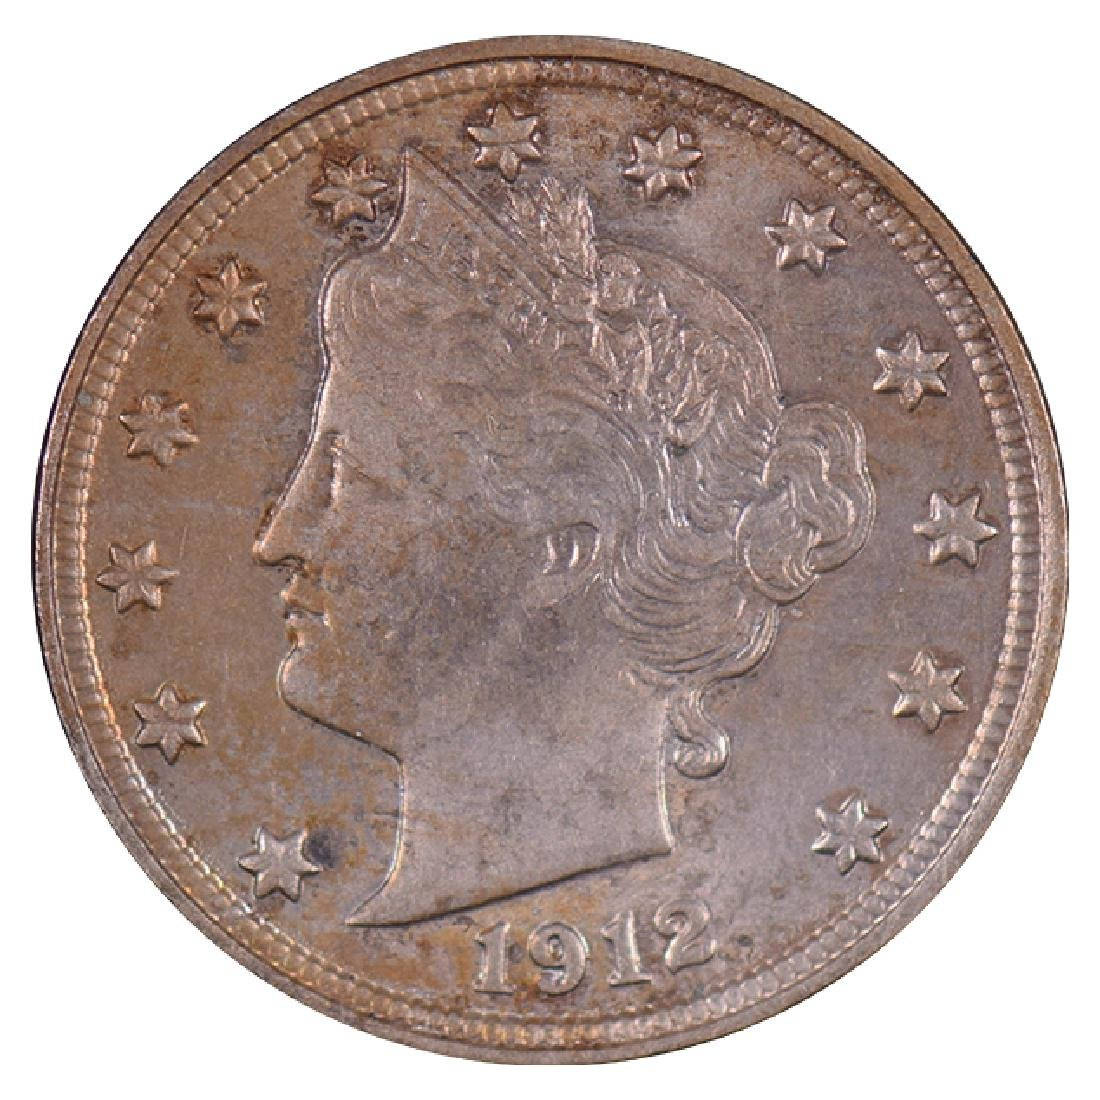 1912 Liberty Nickel Coin